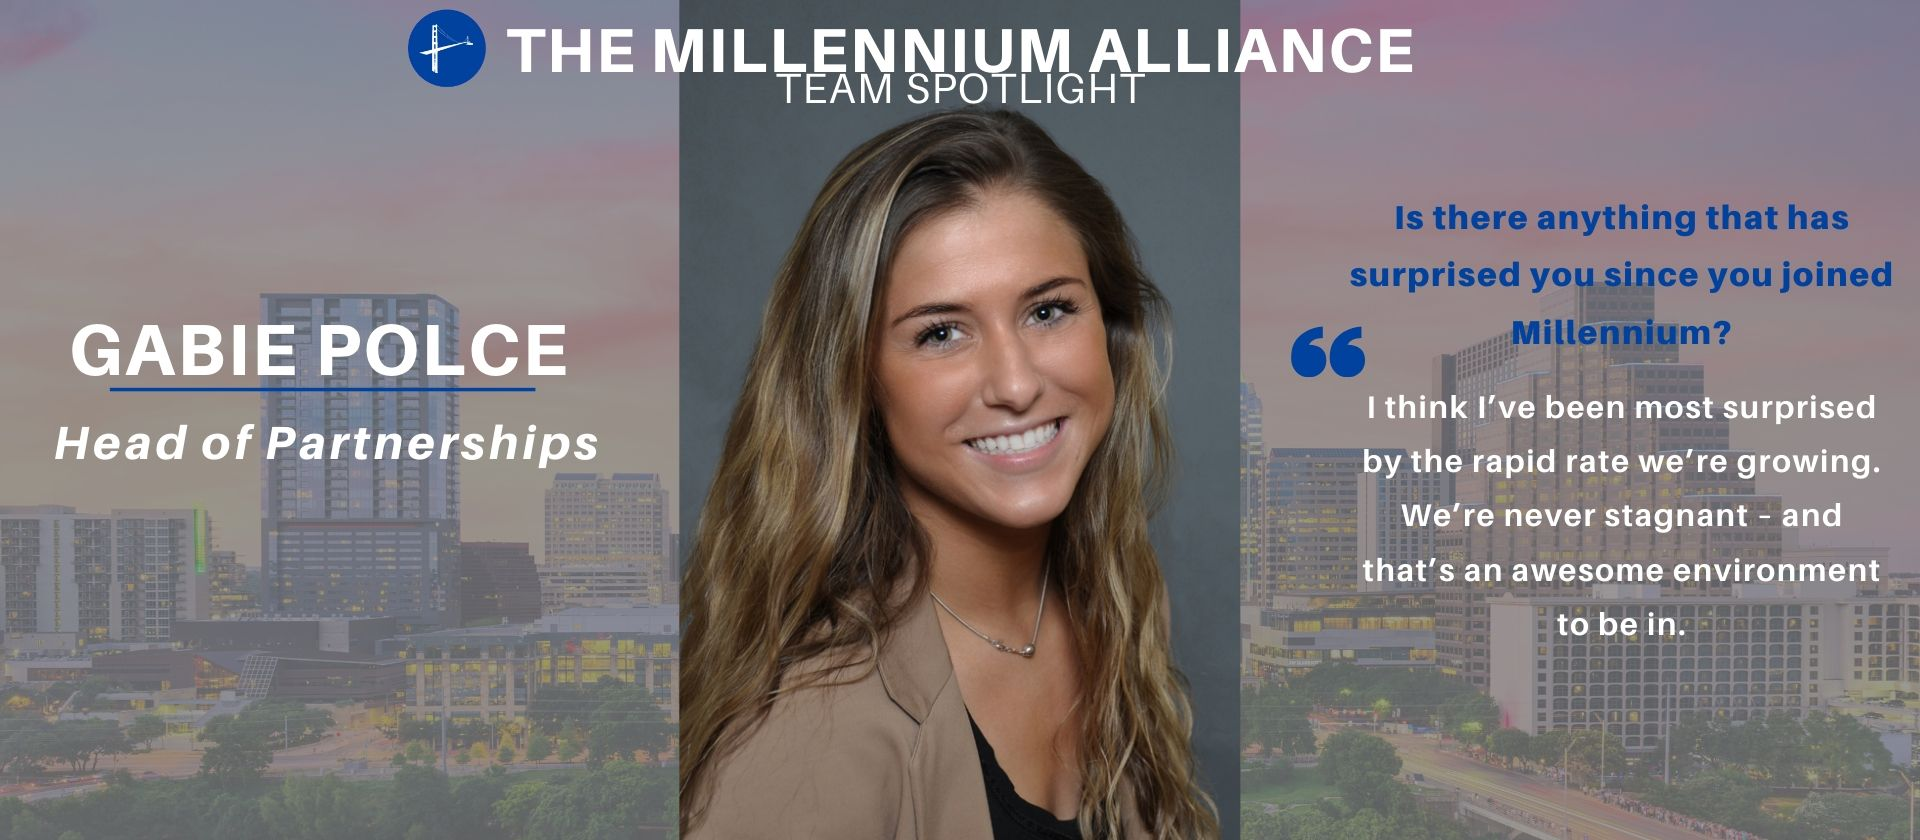 The Millenium Alliance Team Spotlight Gabie Polce